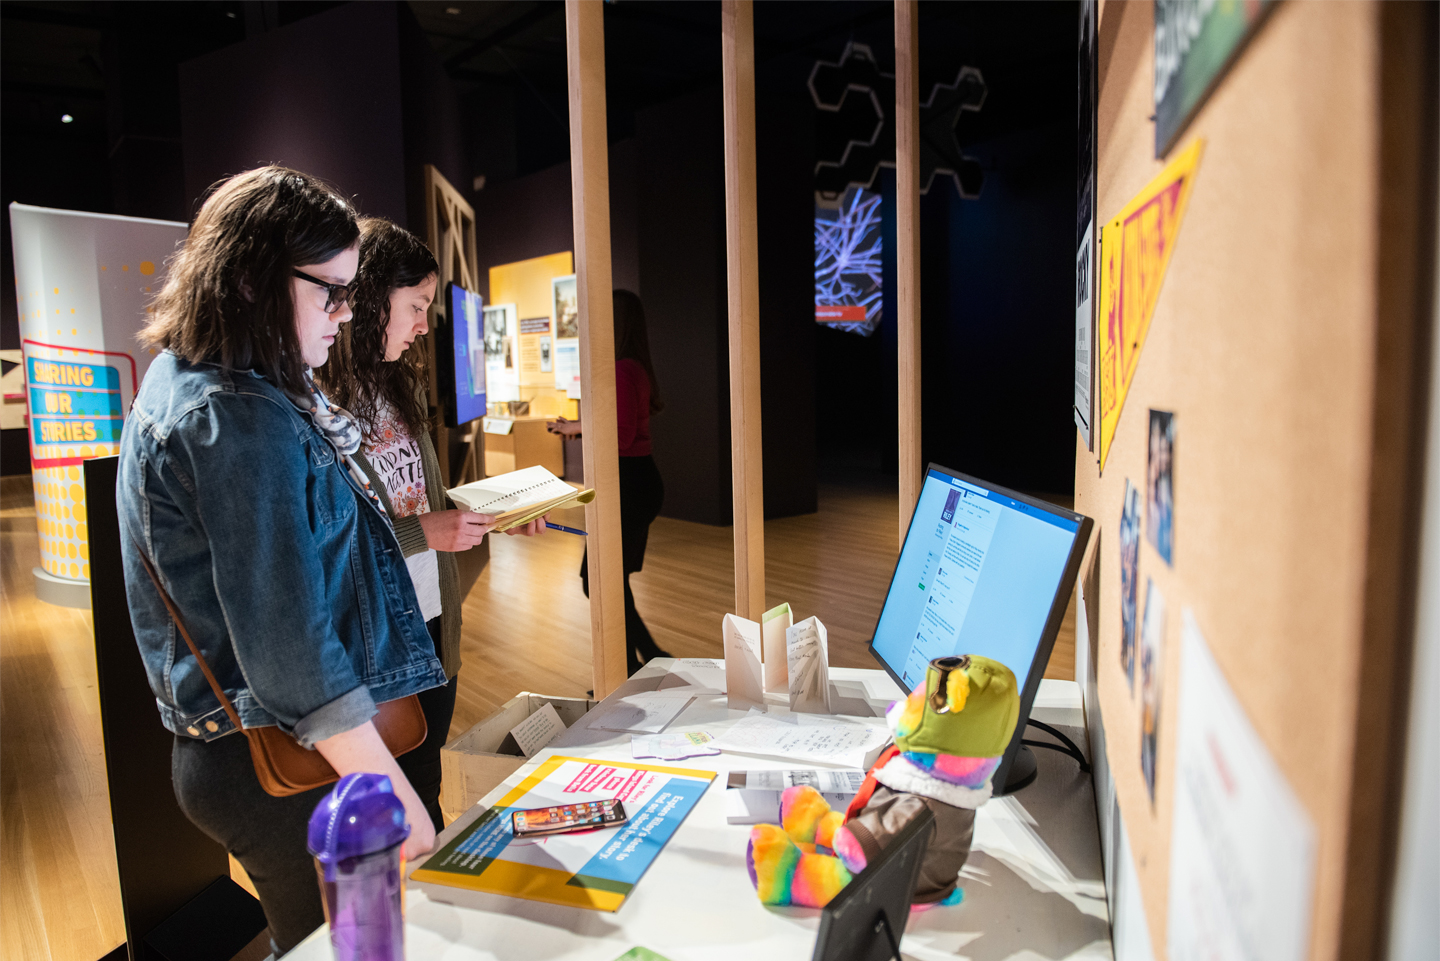 Guests Interacting with Fix Exhibit